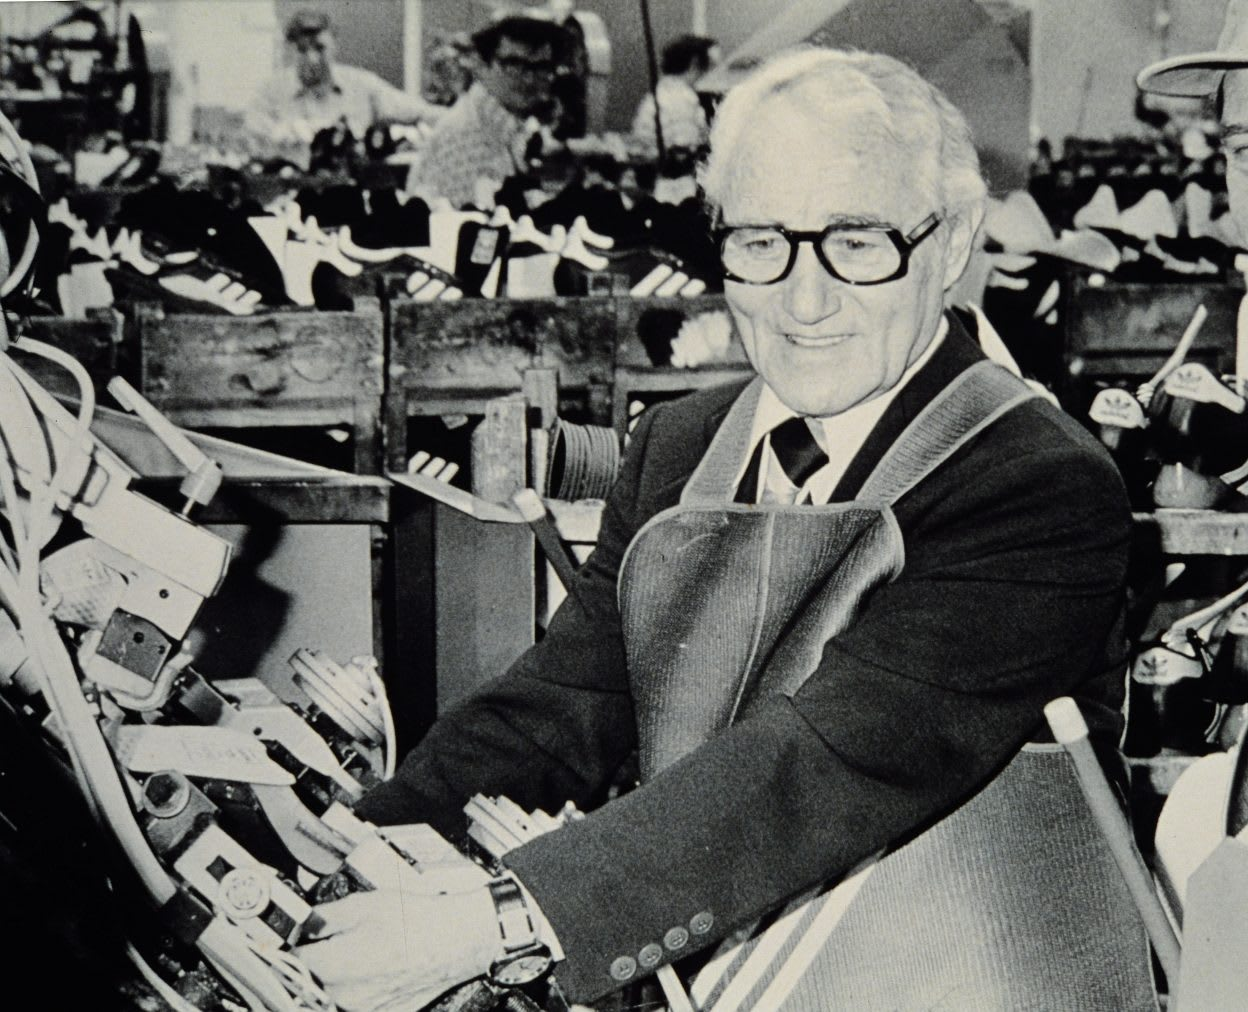 Old photo of a smiling old man wearing glasses in a shoe factory wearing apron, Adolf, Dassler, Adi, adidas, sports, shoes, shoemaker, history, archive